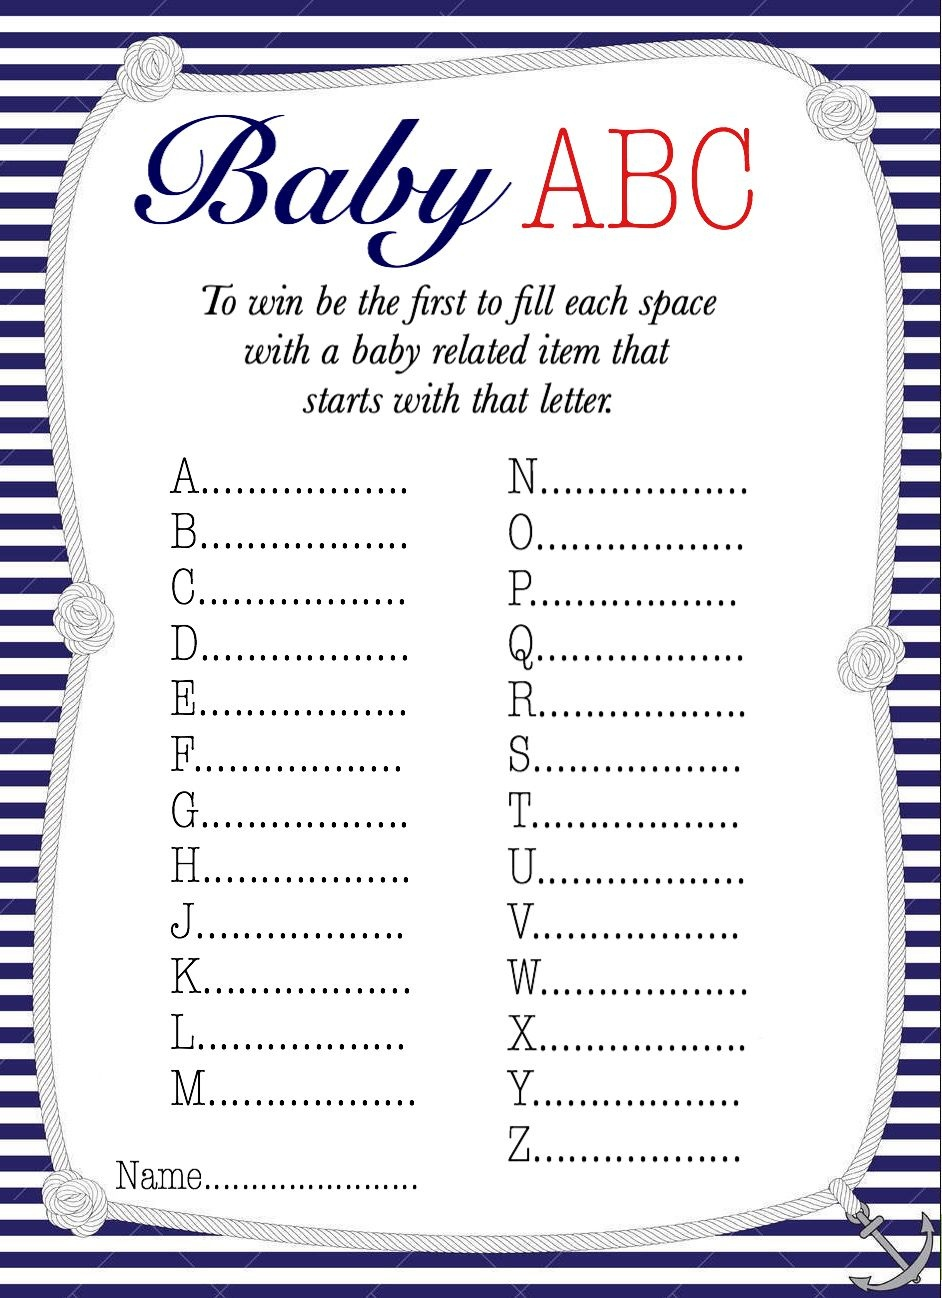 50+ Free Baby Shower Printables For A Perfect Party - Page 21 - Free Printable Online Baby Shower Games